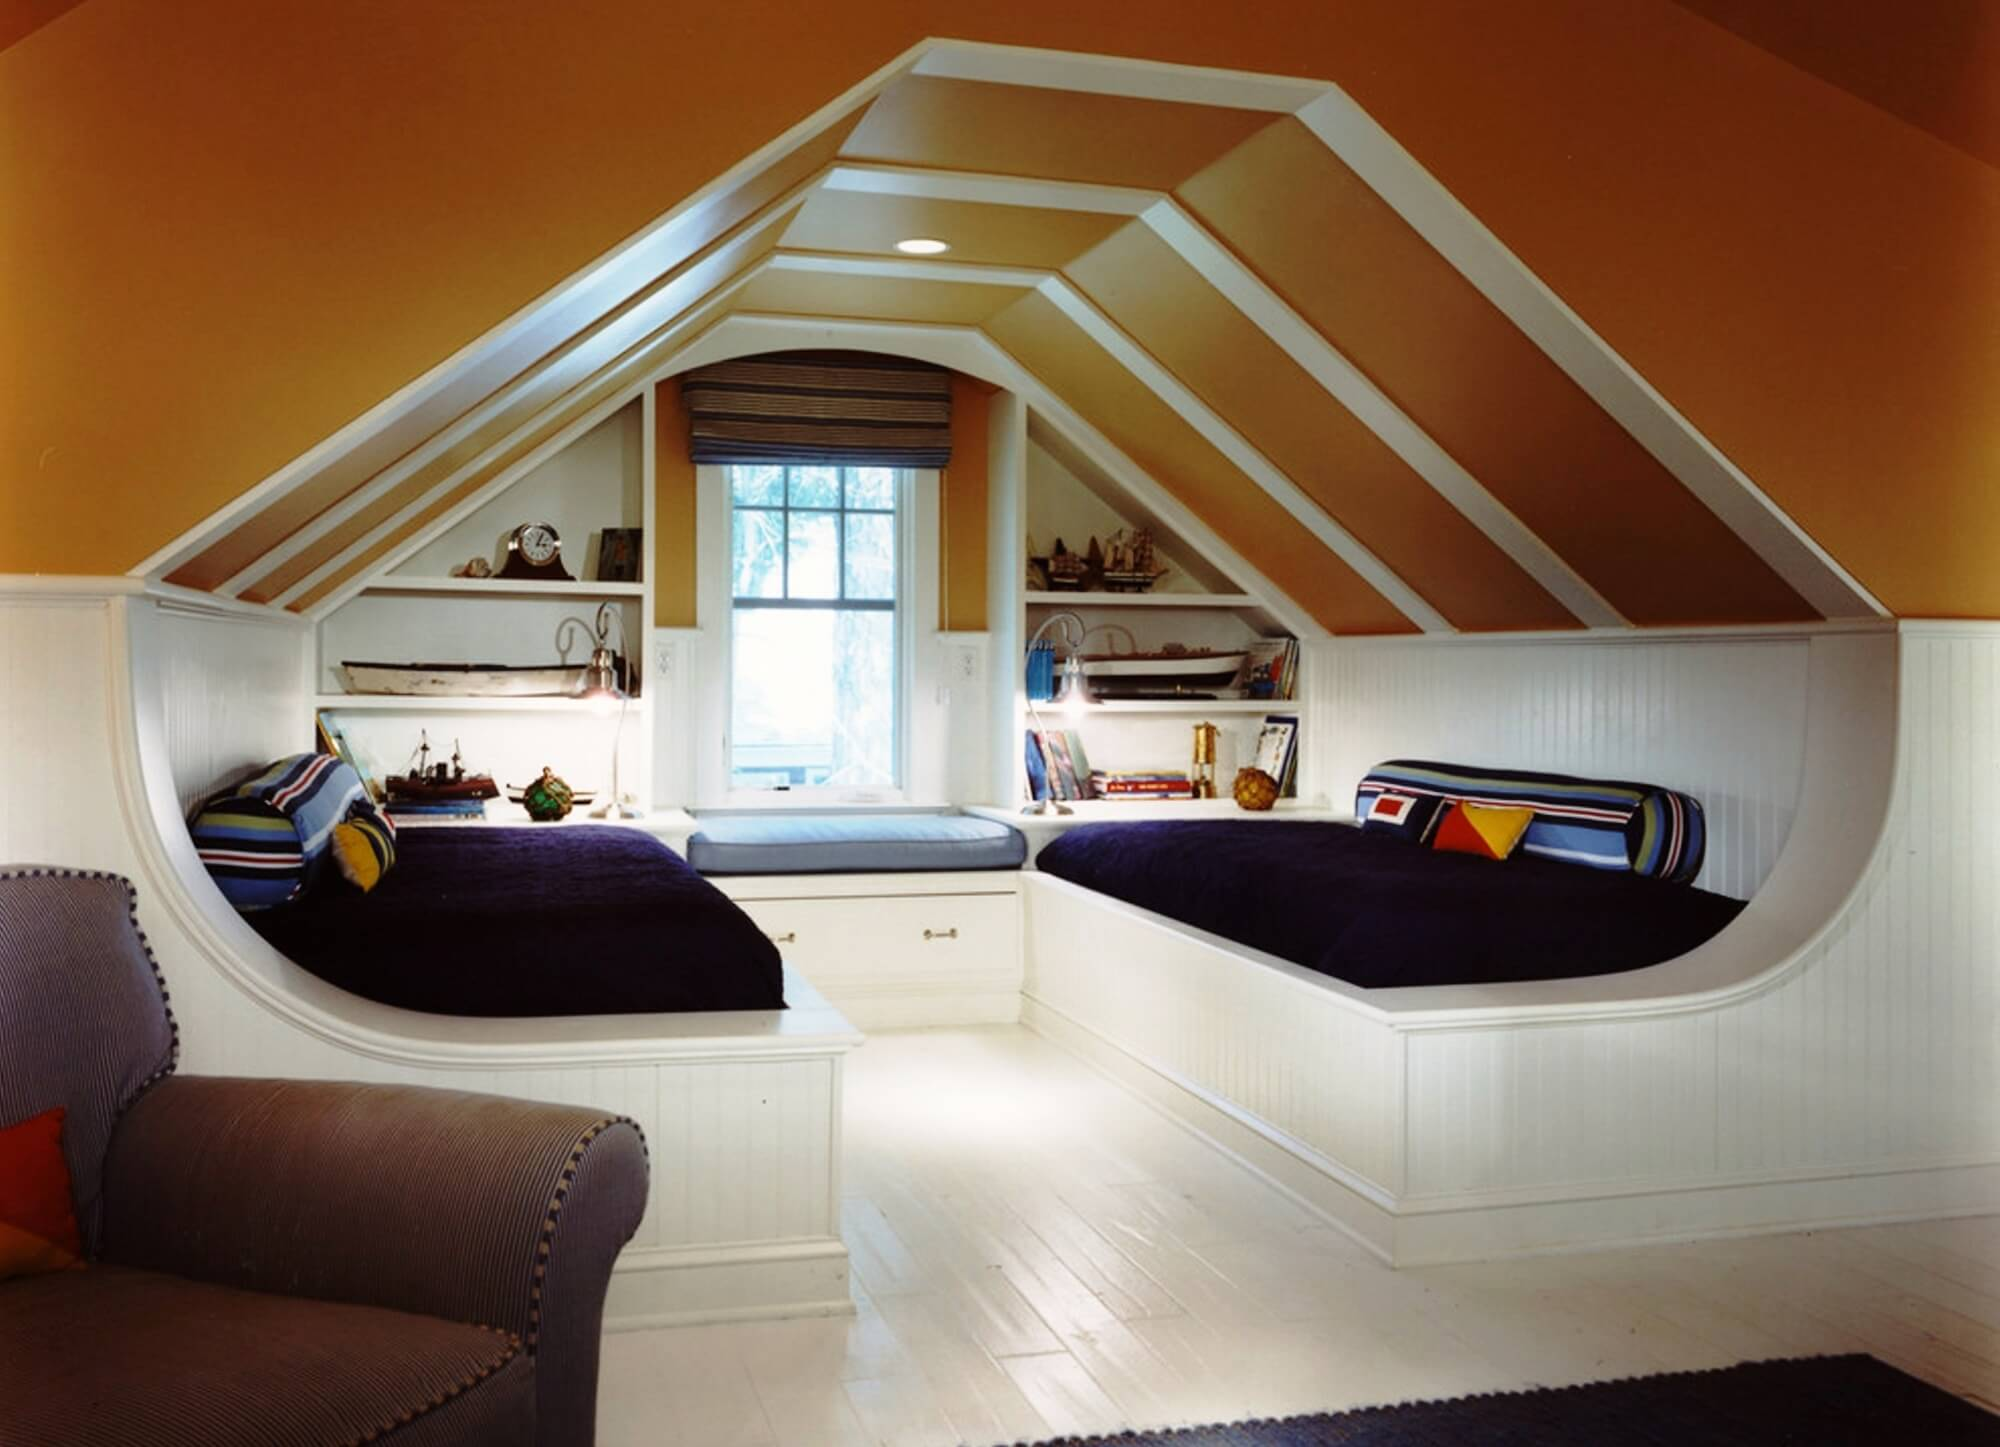 Even the attic can be converted